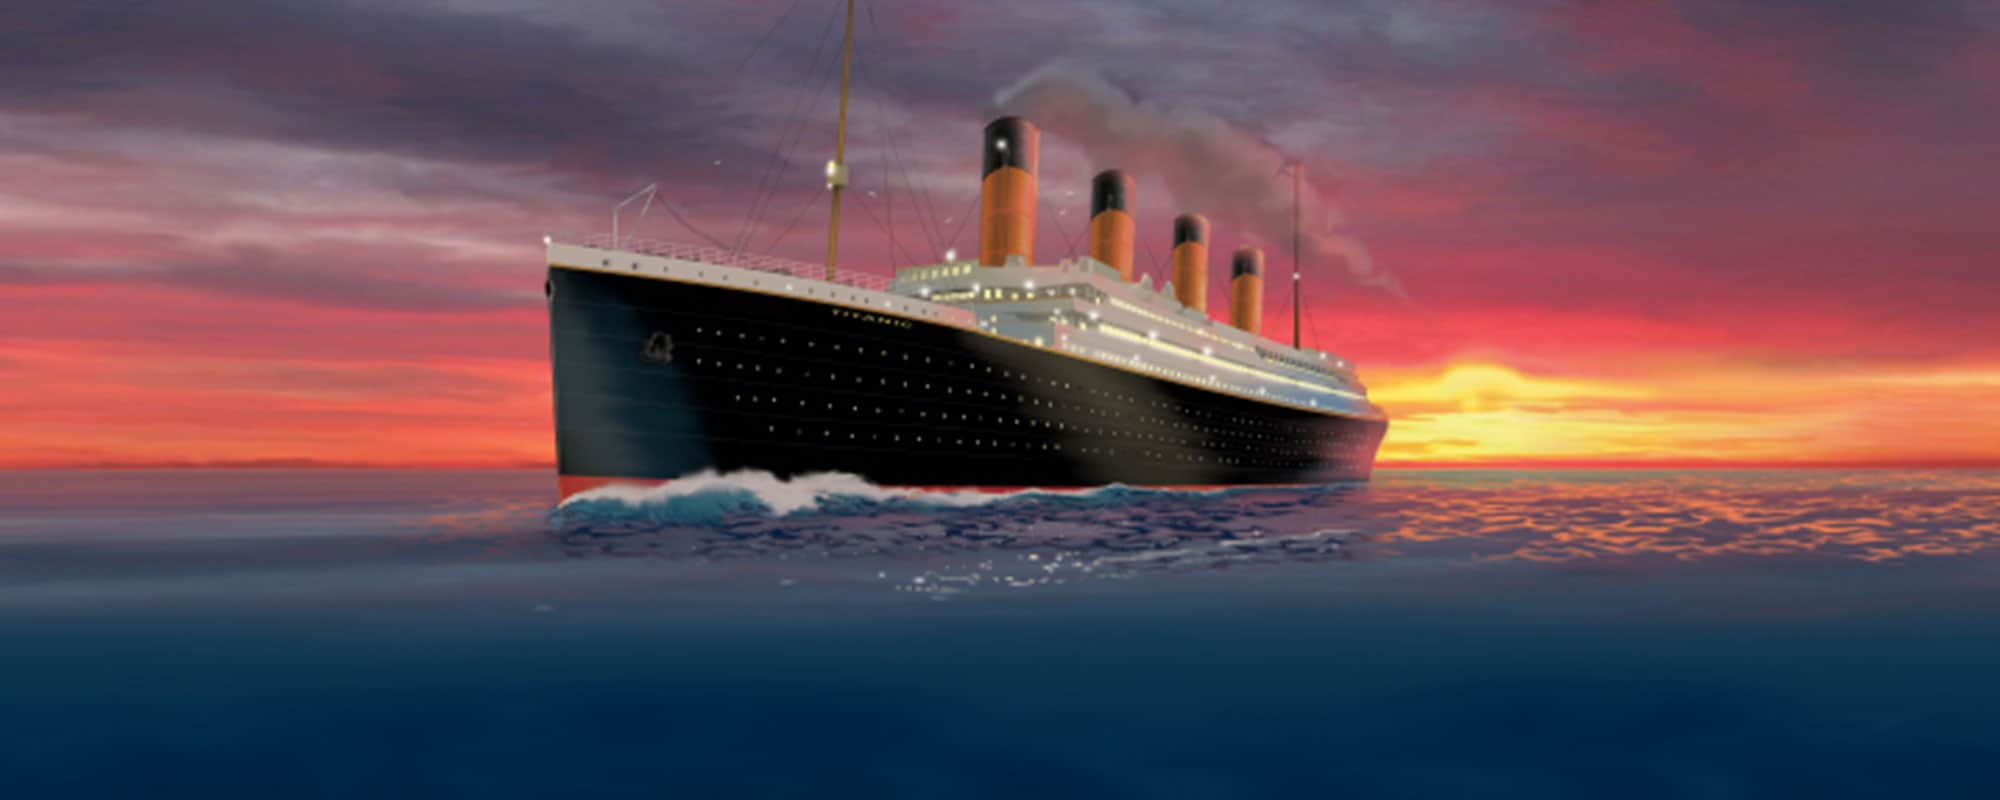 Titanic Artifact Exhibition Featured Deal